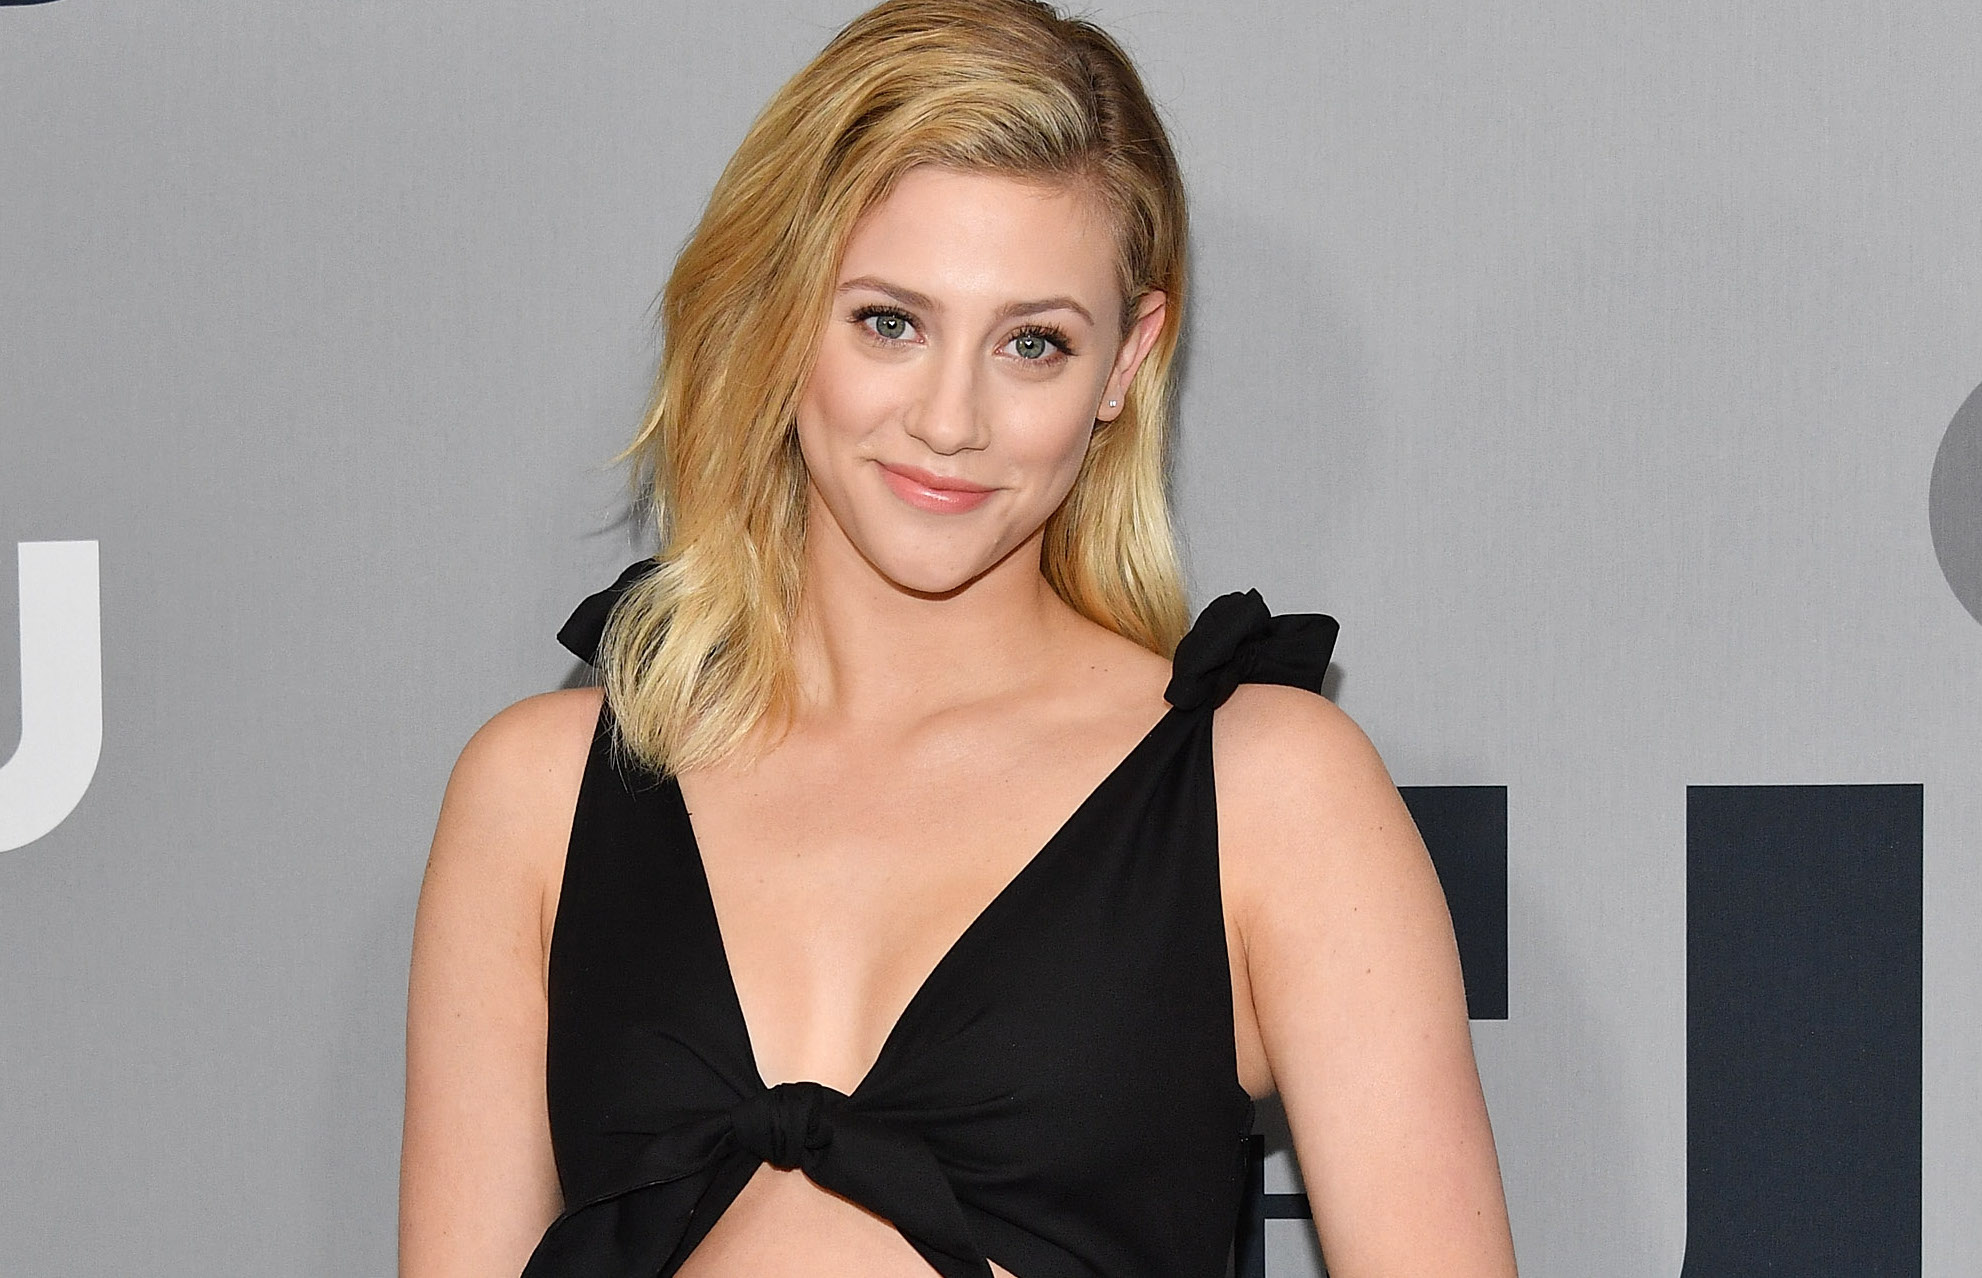 Lili Reinhart responded to pregnancy rumors with the most body-positive clapback